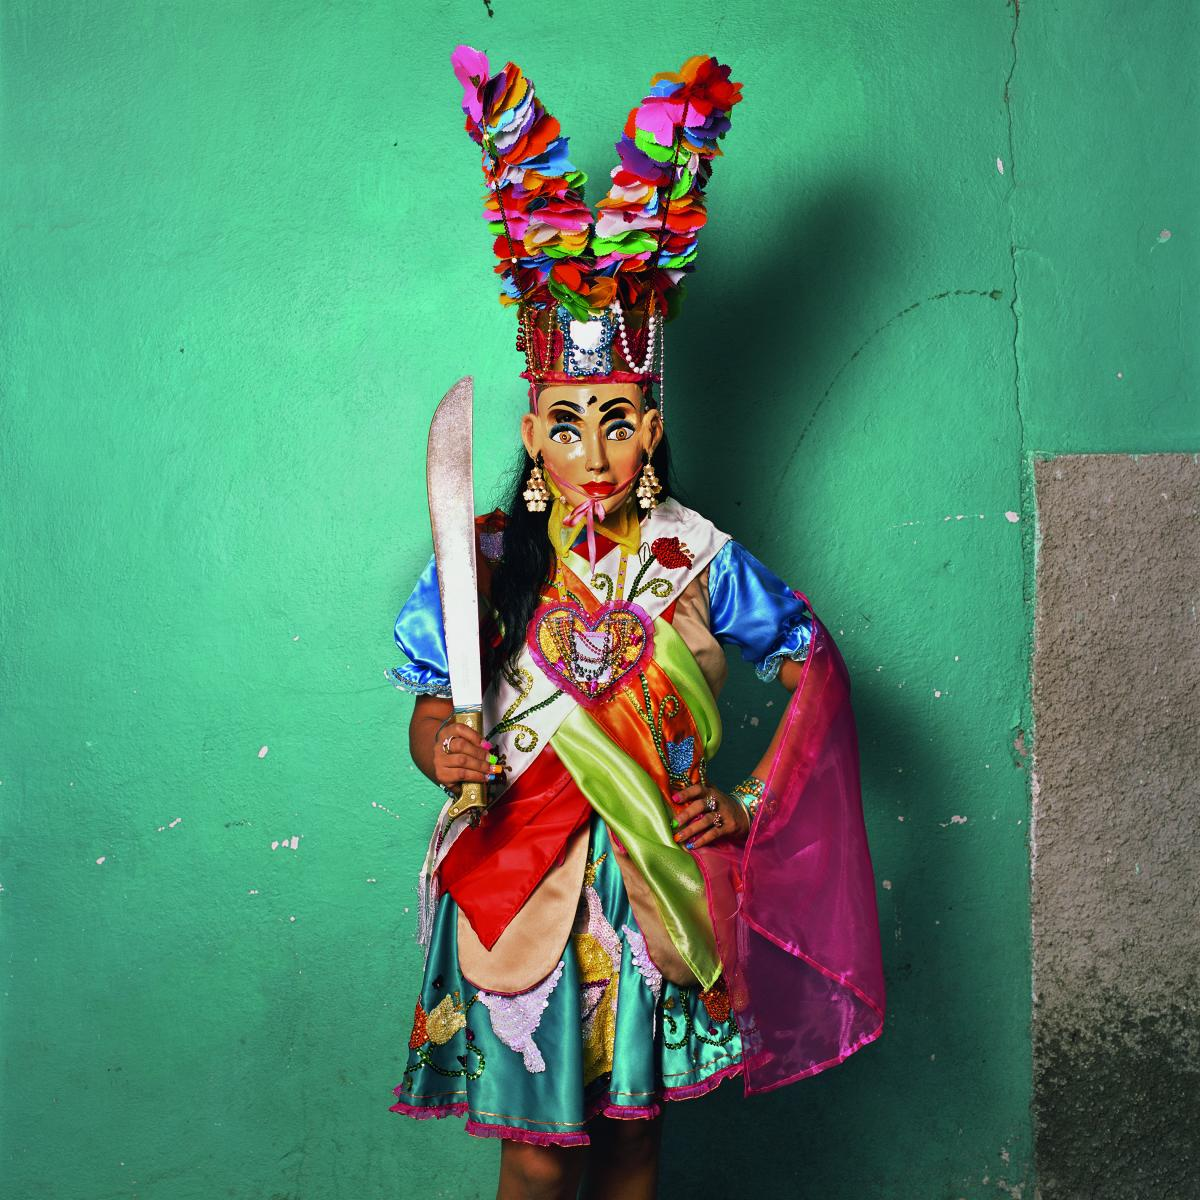 A regal costume from the state of Guerrero, where festivals draw from both Catholic and Mesoamerican themes. The sword-wielding queen leads a pageant group. In the past, men have played the part, but now women are starting to get involved.